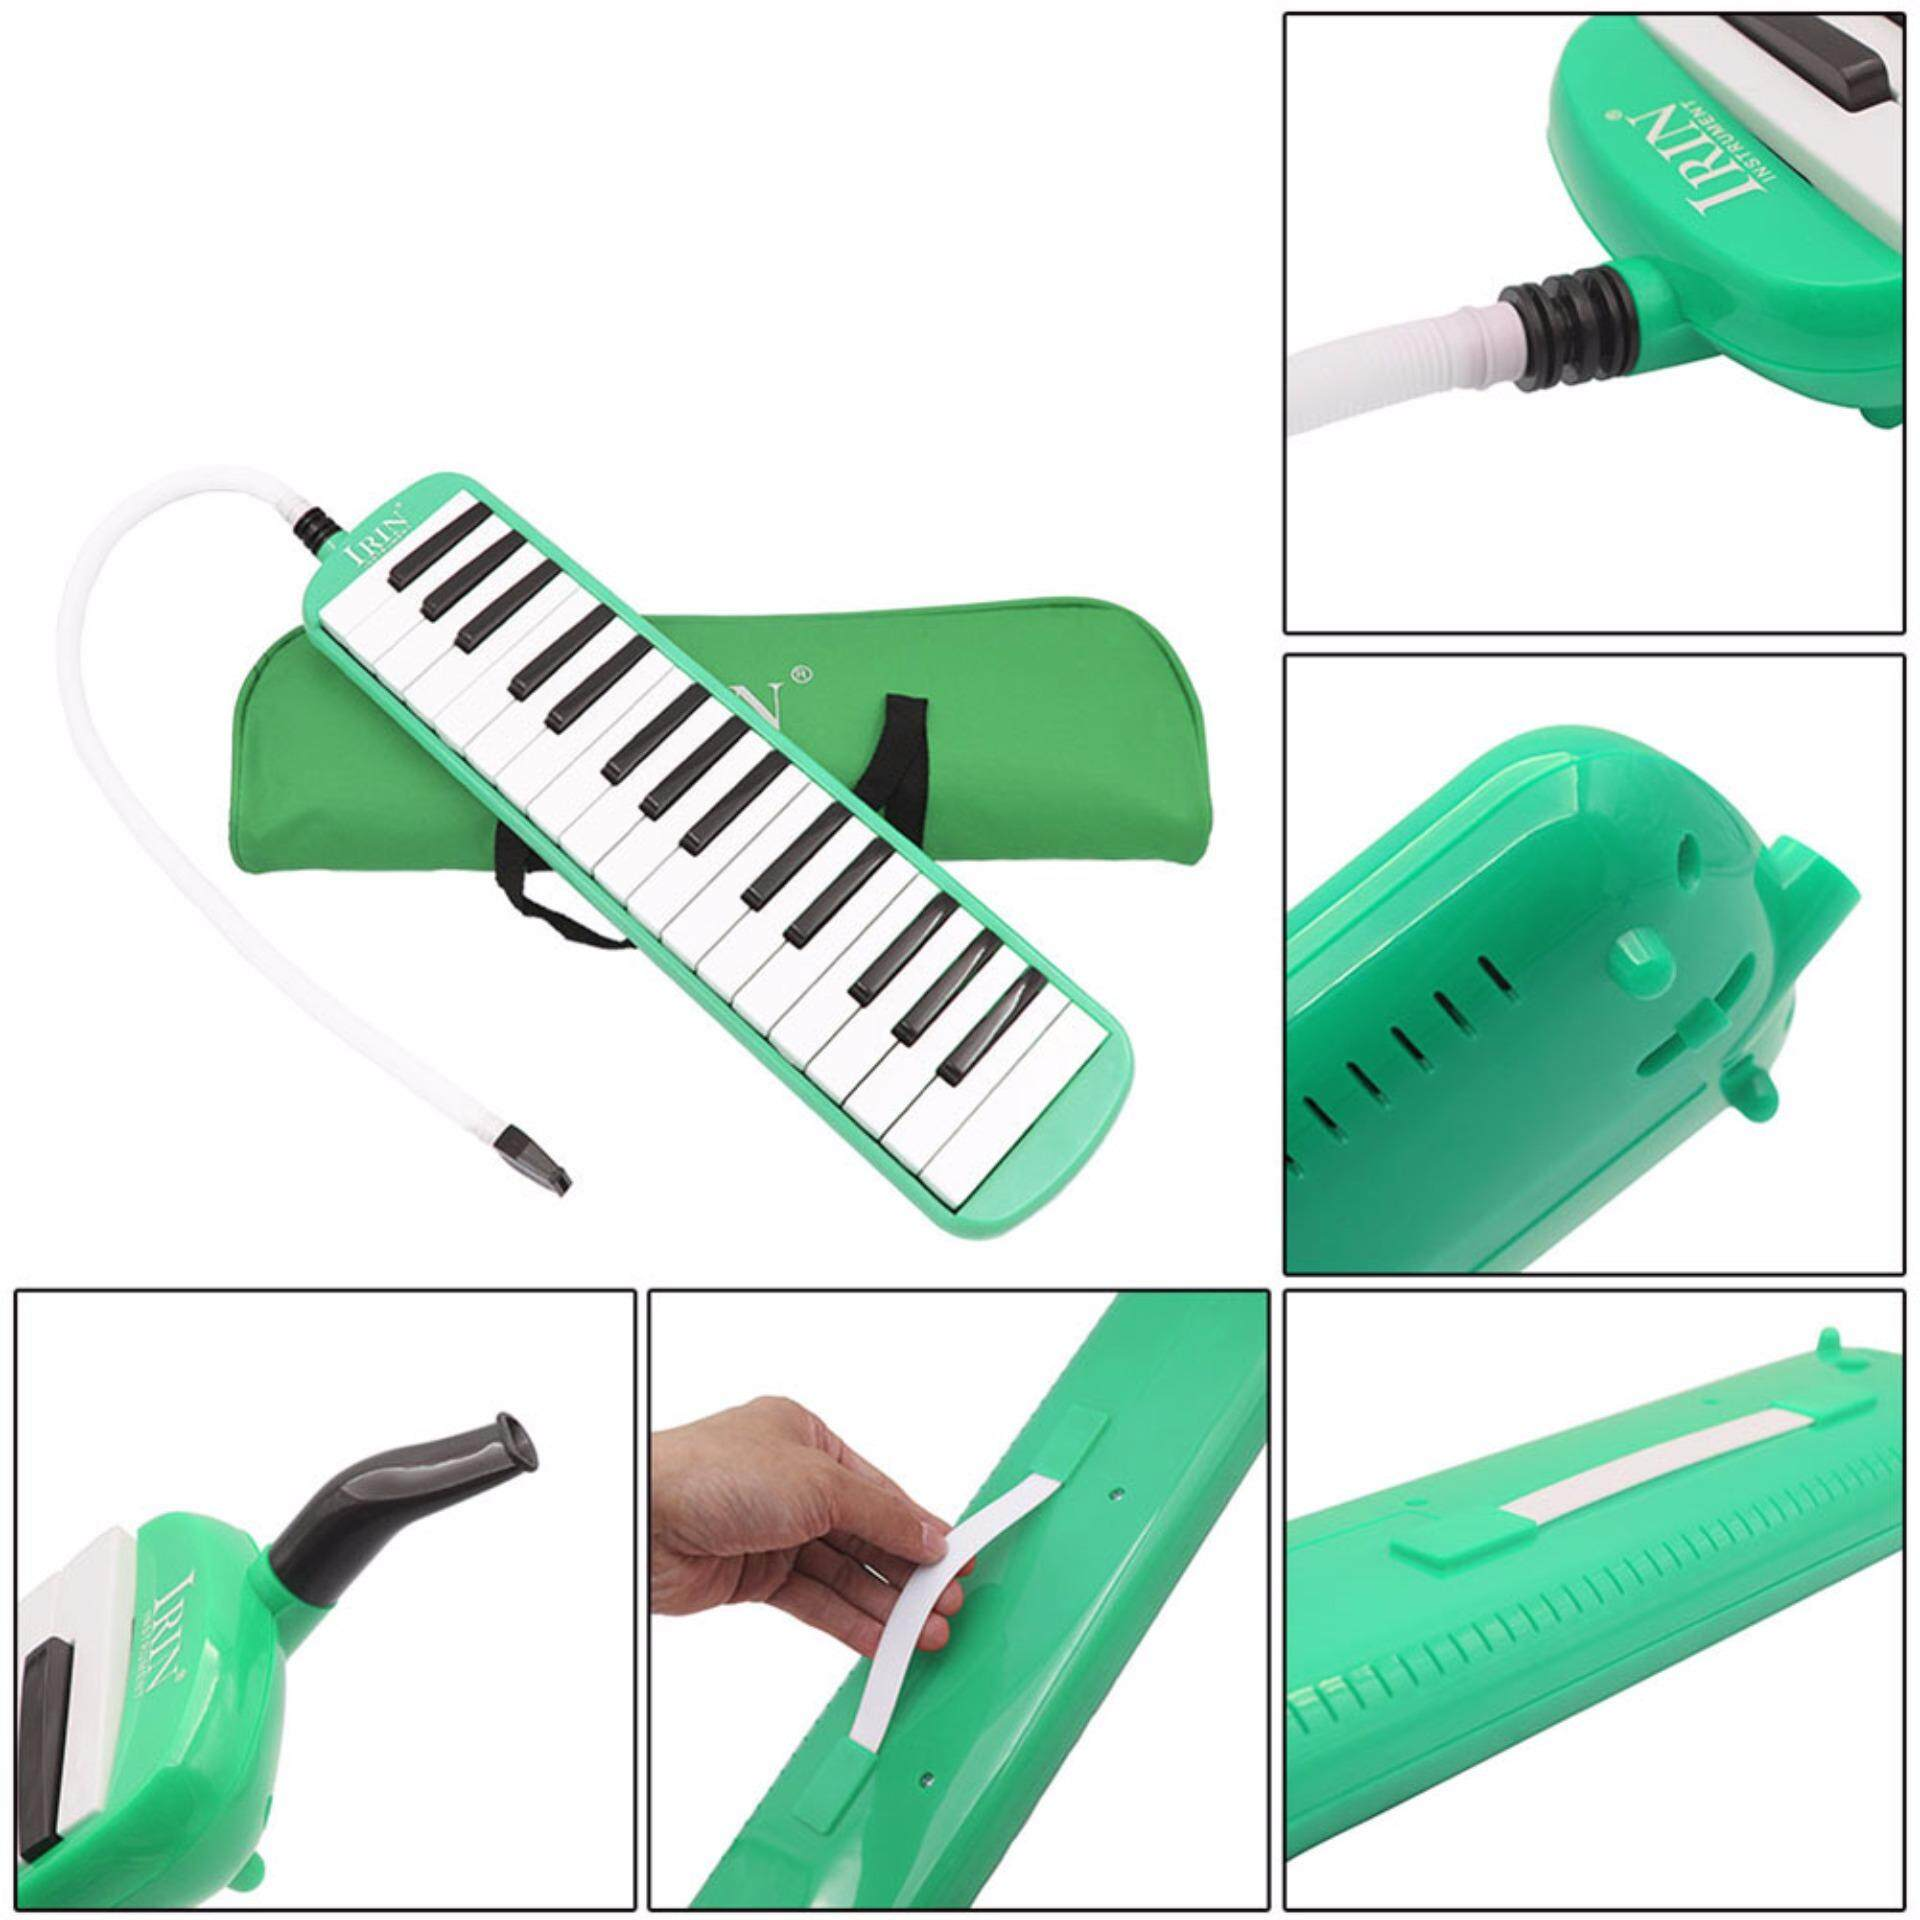 32 Key Piano Style Melodica With Deluxe Carrying Case Organ Accordion Mouth Piece Blow Key Board Instrument By Wangwang Store.